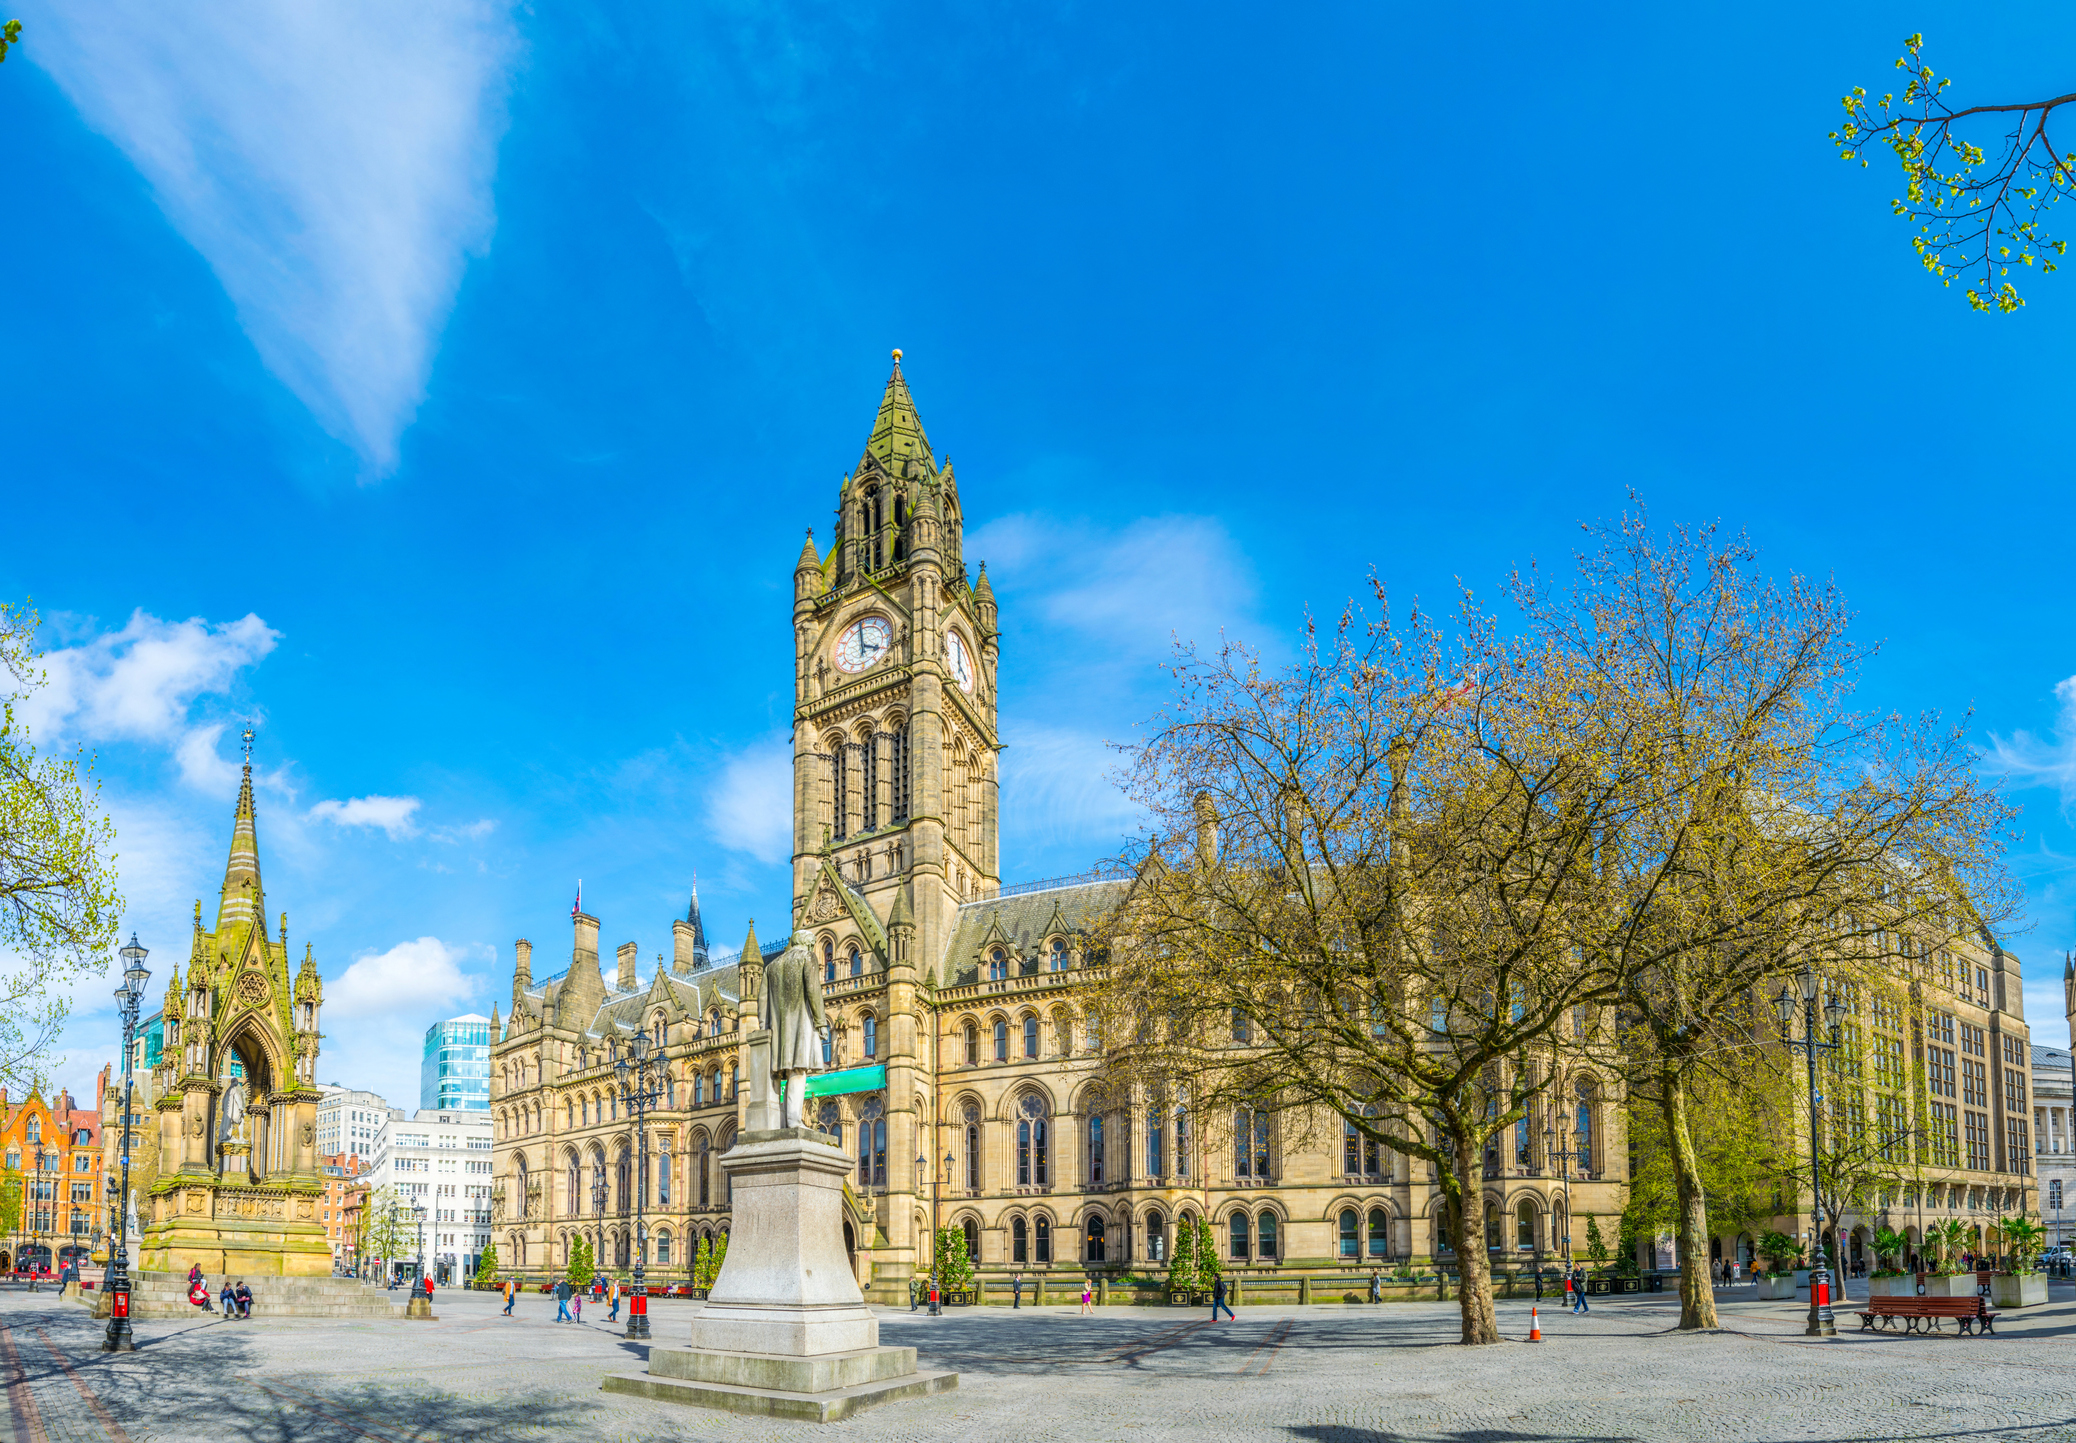 Manchester_town hall